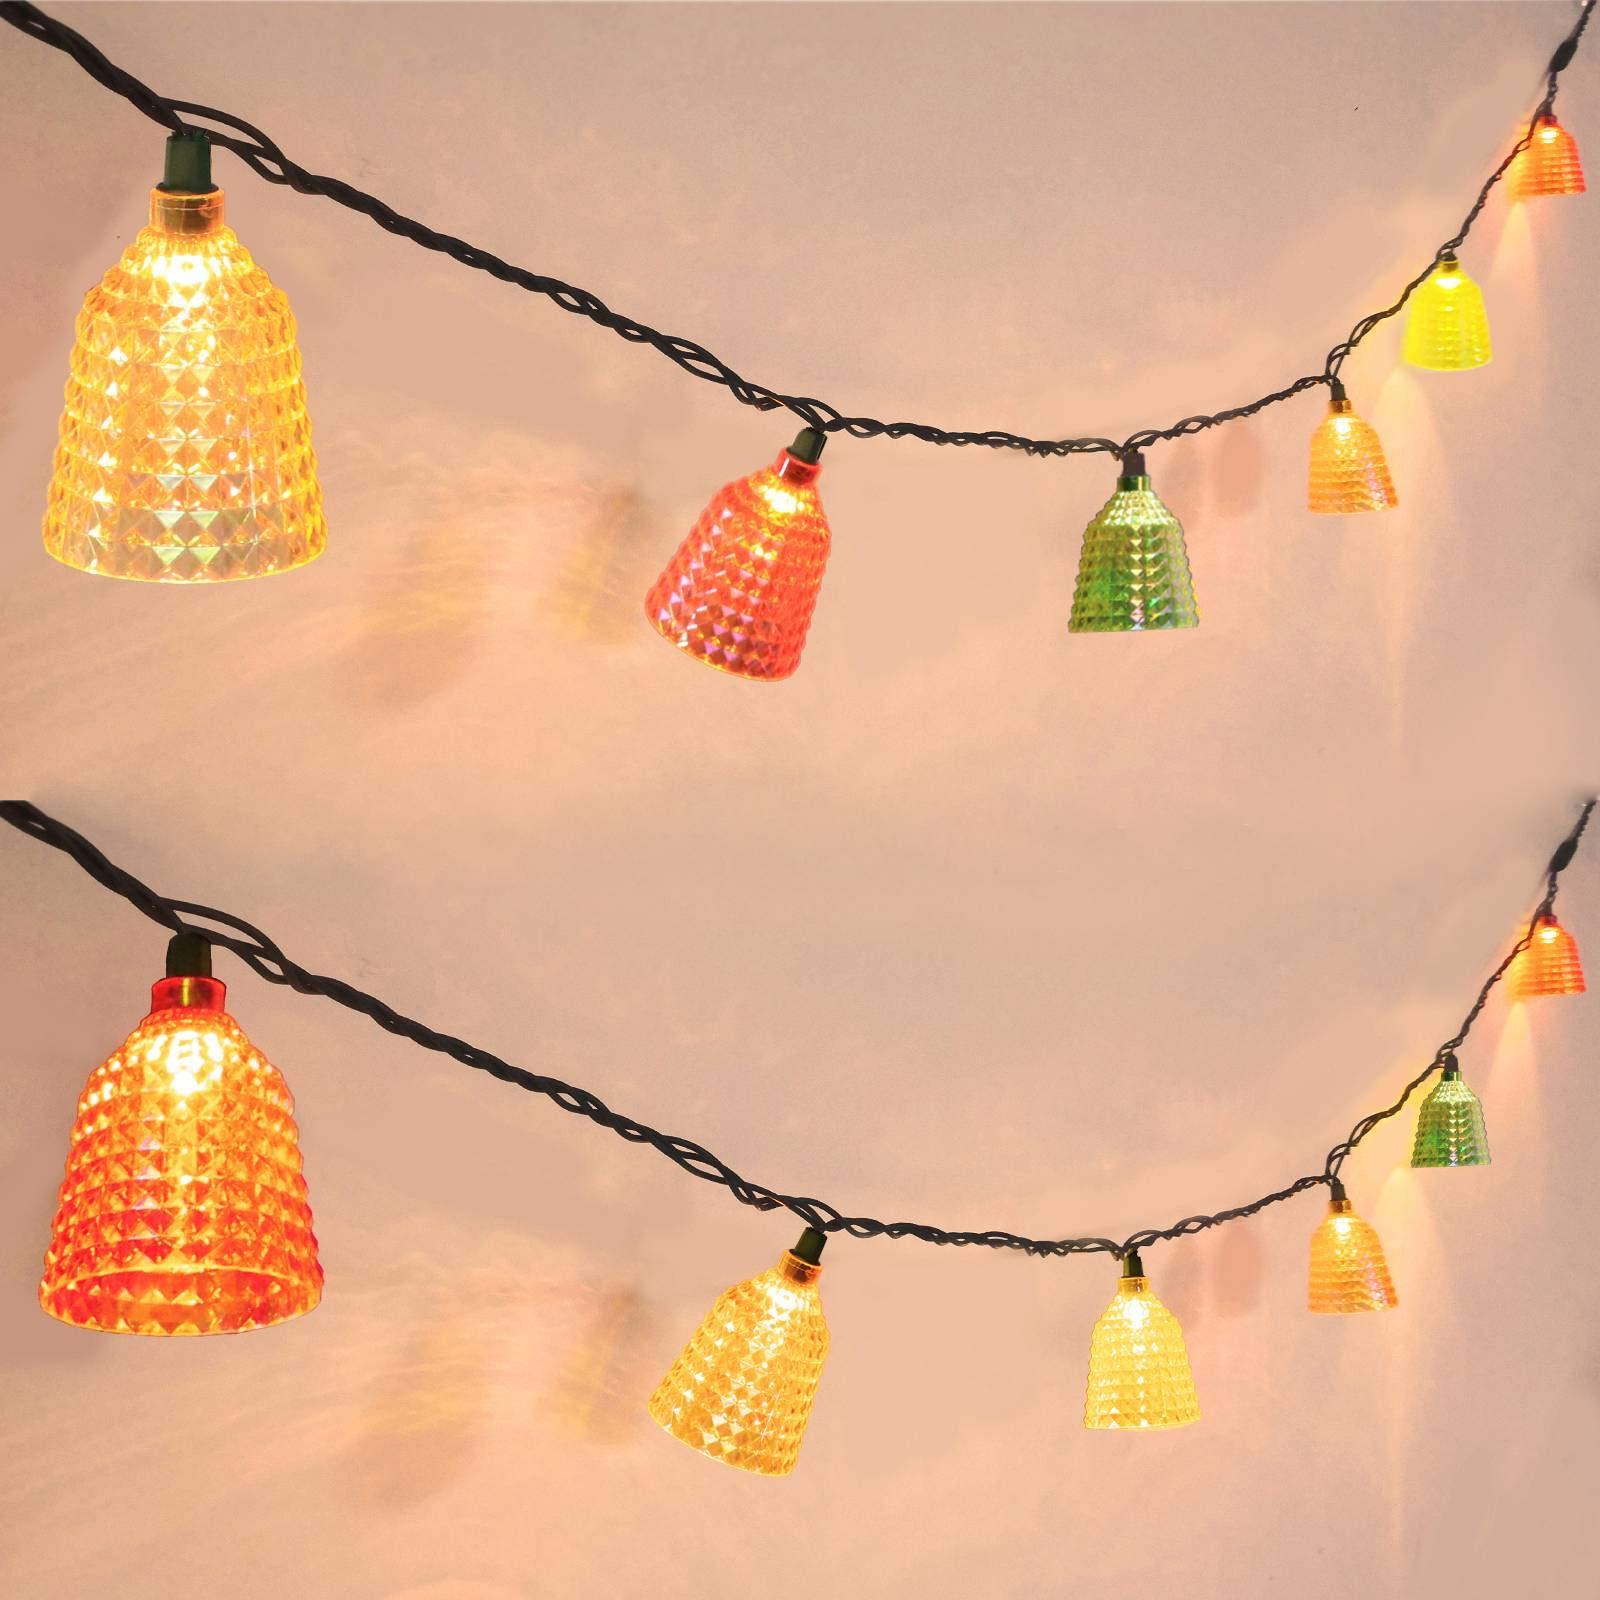 Afirst Decorative String Lights – Multi-Color Lights String Connectable Waterproof Outdoor String